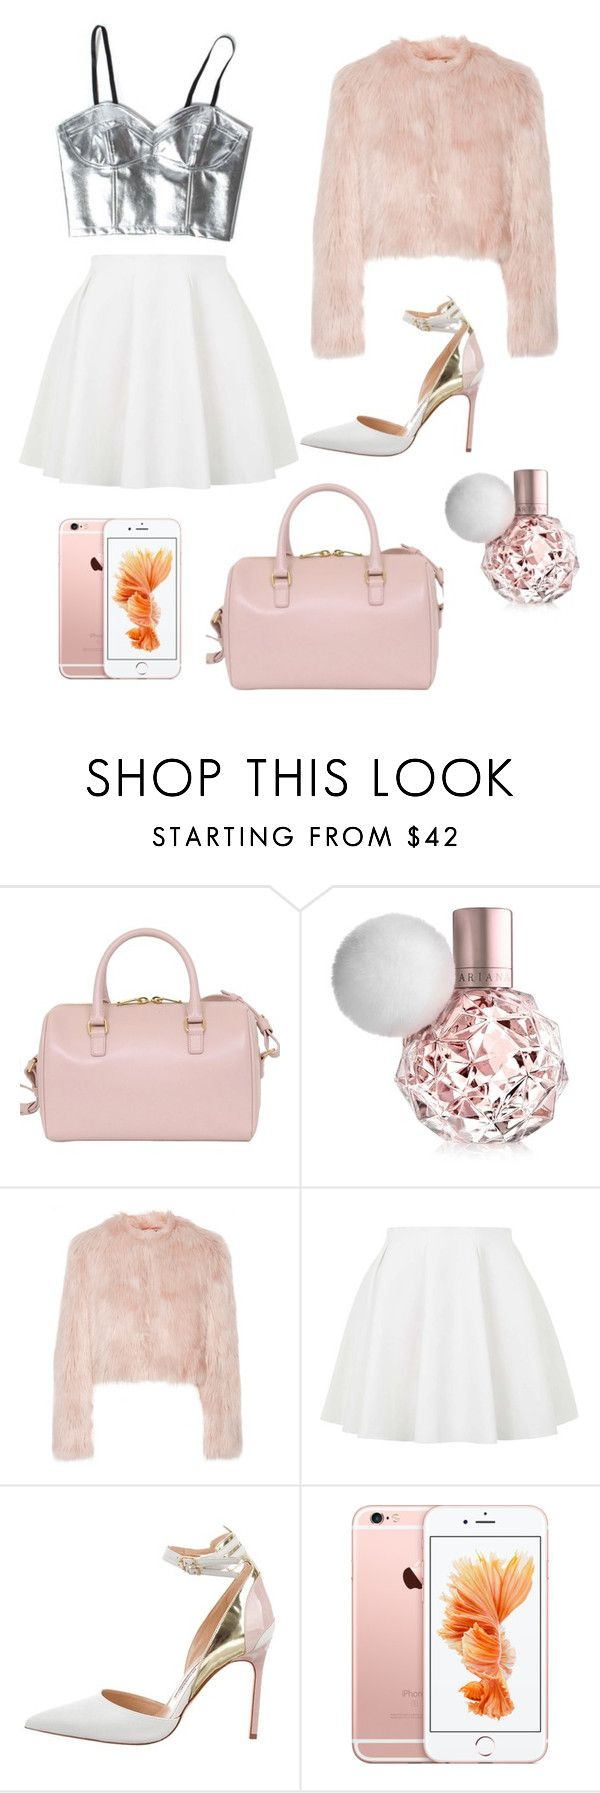 """ARIANA GRANDE SCREAM QUEENS INSPIRED OUTFIT"" by hhff-1 ❤ liked on Polyvore featuring Yves Saint Laurent, RED Valentino, Topshop and Manolo Blahnik"